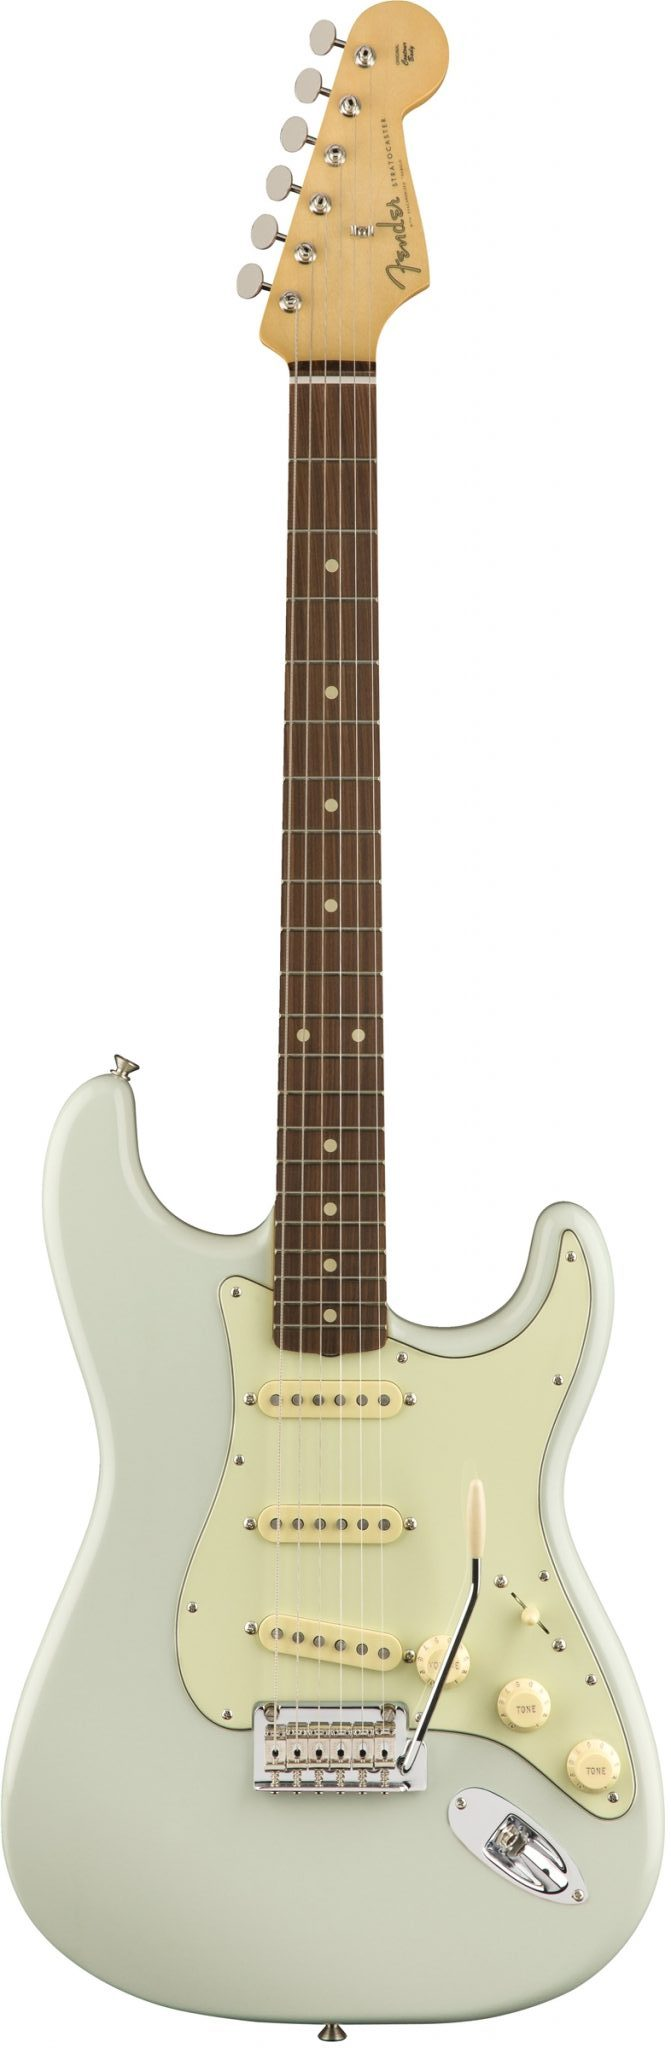 Fender Classic Player '60's Stratocaster